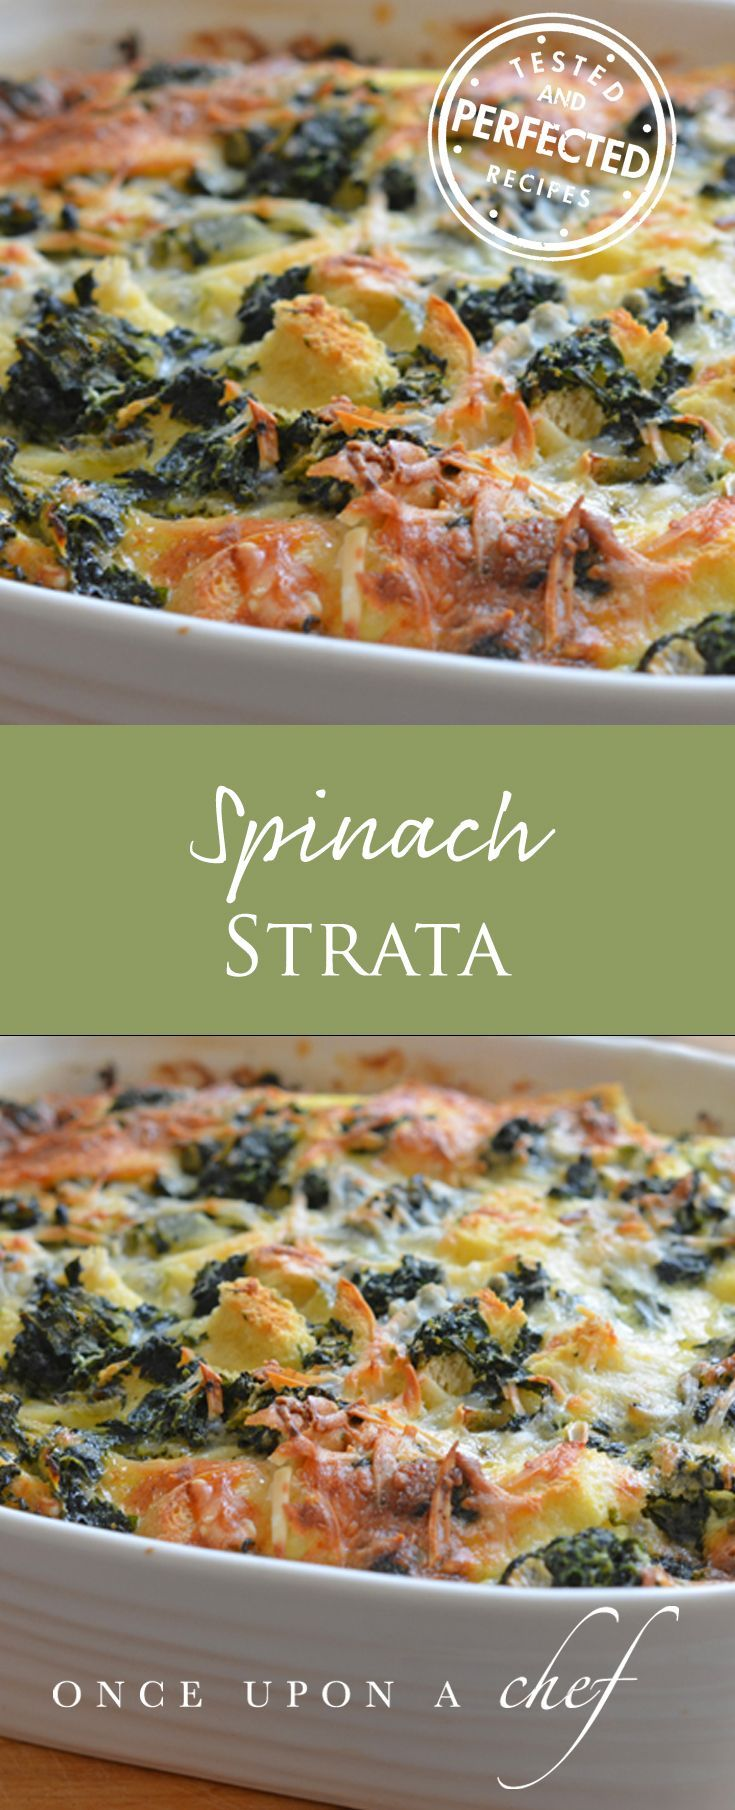 Spinach & Cheese Strata everyone loved this made for family brunch.... added breakfast sausage & used challah bread. Winner